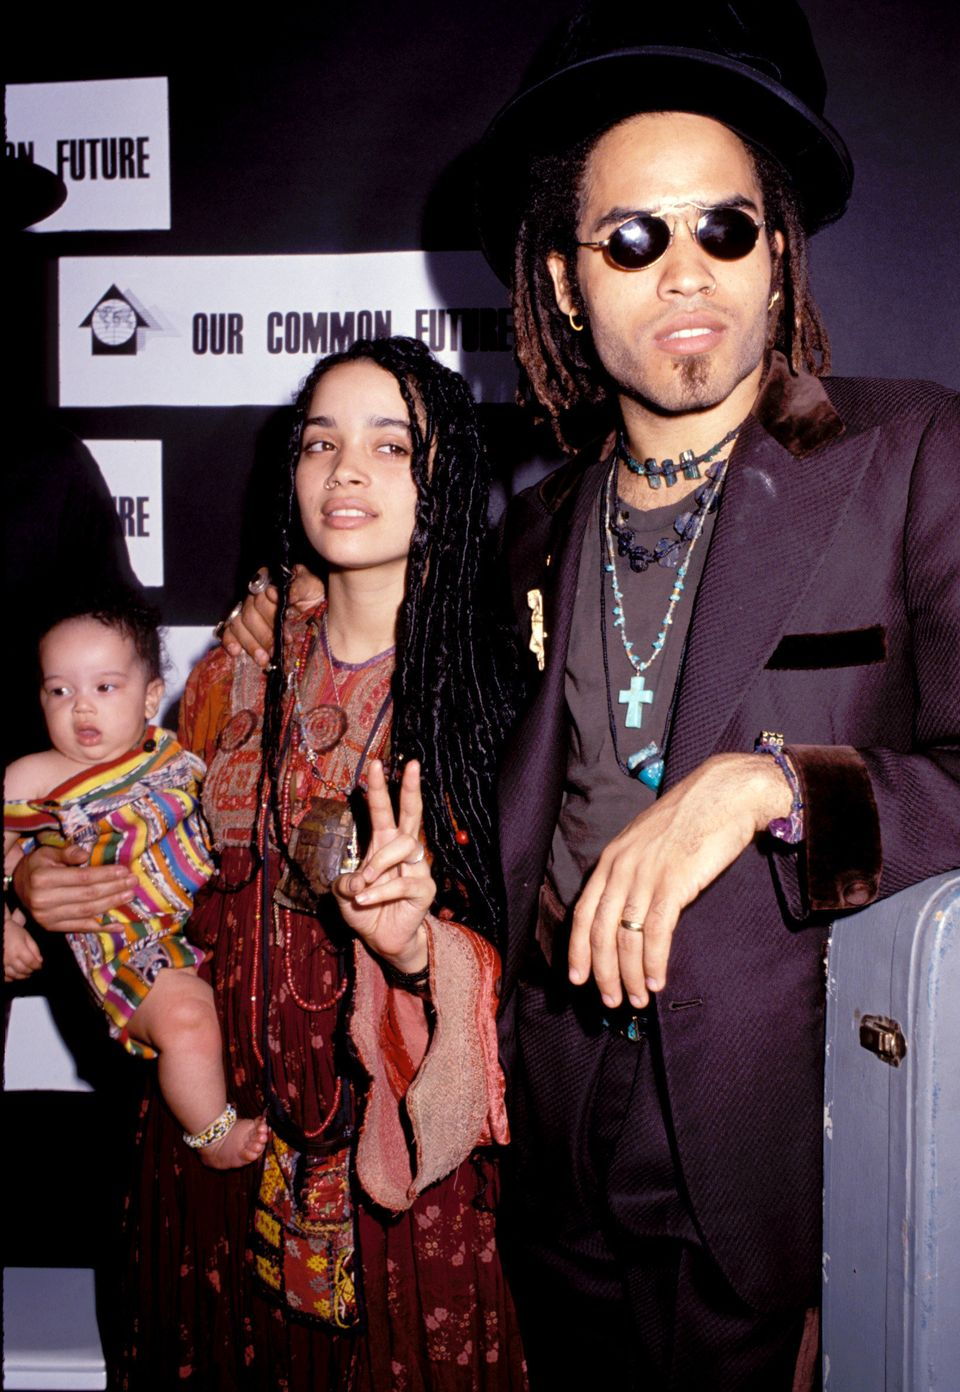 In 1988, Lenny Kravitz and Lisa Bonet welcomed a daughter named Zoe.   After the couple divorced in 1993, Bonet went on to ha